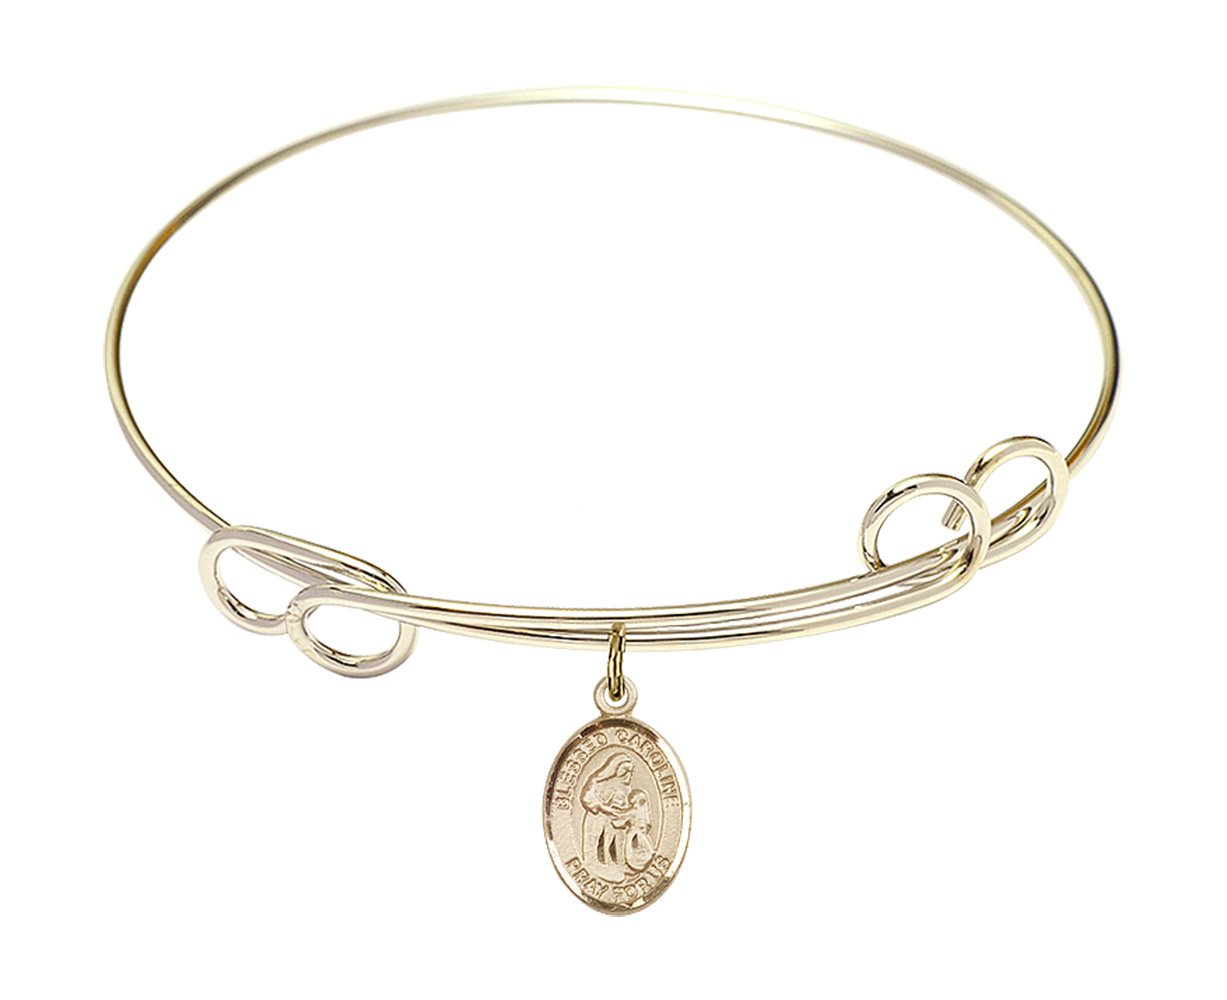 Felicity Charm. DiamondJewelryNY Eye Hook Bangle Bracelet with a St